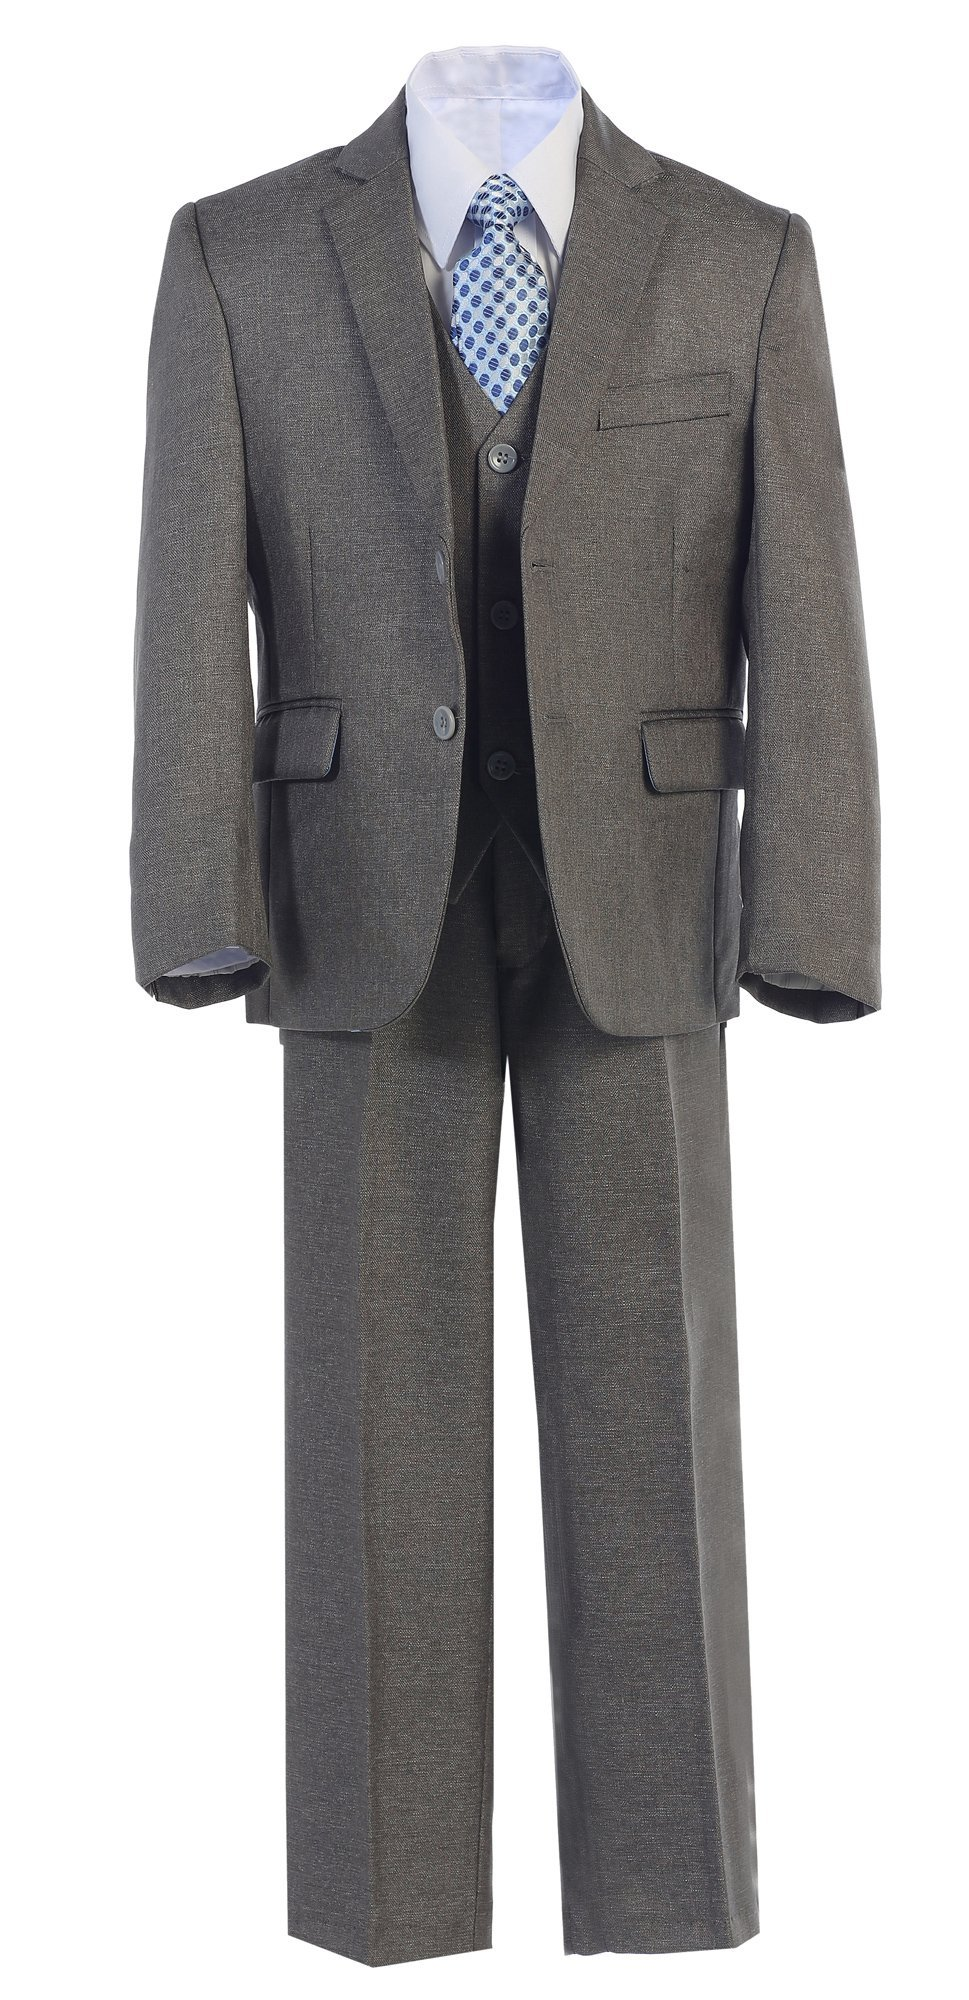 Whispers Boys Toddler Kid Teen 5-Piece Formal Dark Grey Dress Suit w/Vest Size 2-20 (16, Light Grey) by Whispers (Image #1)